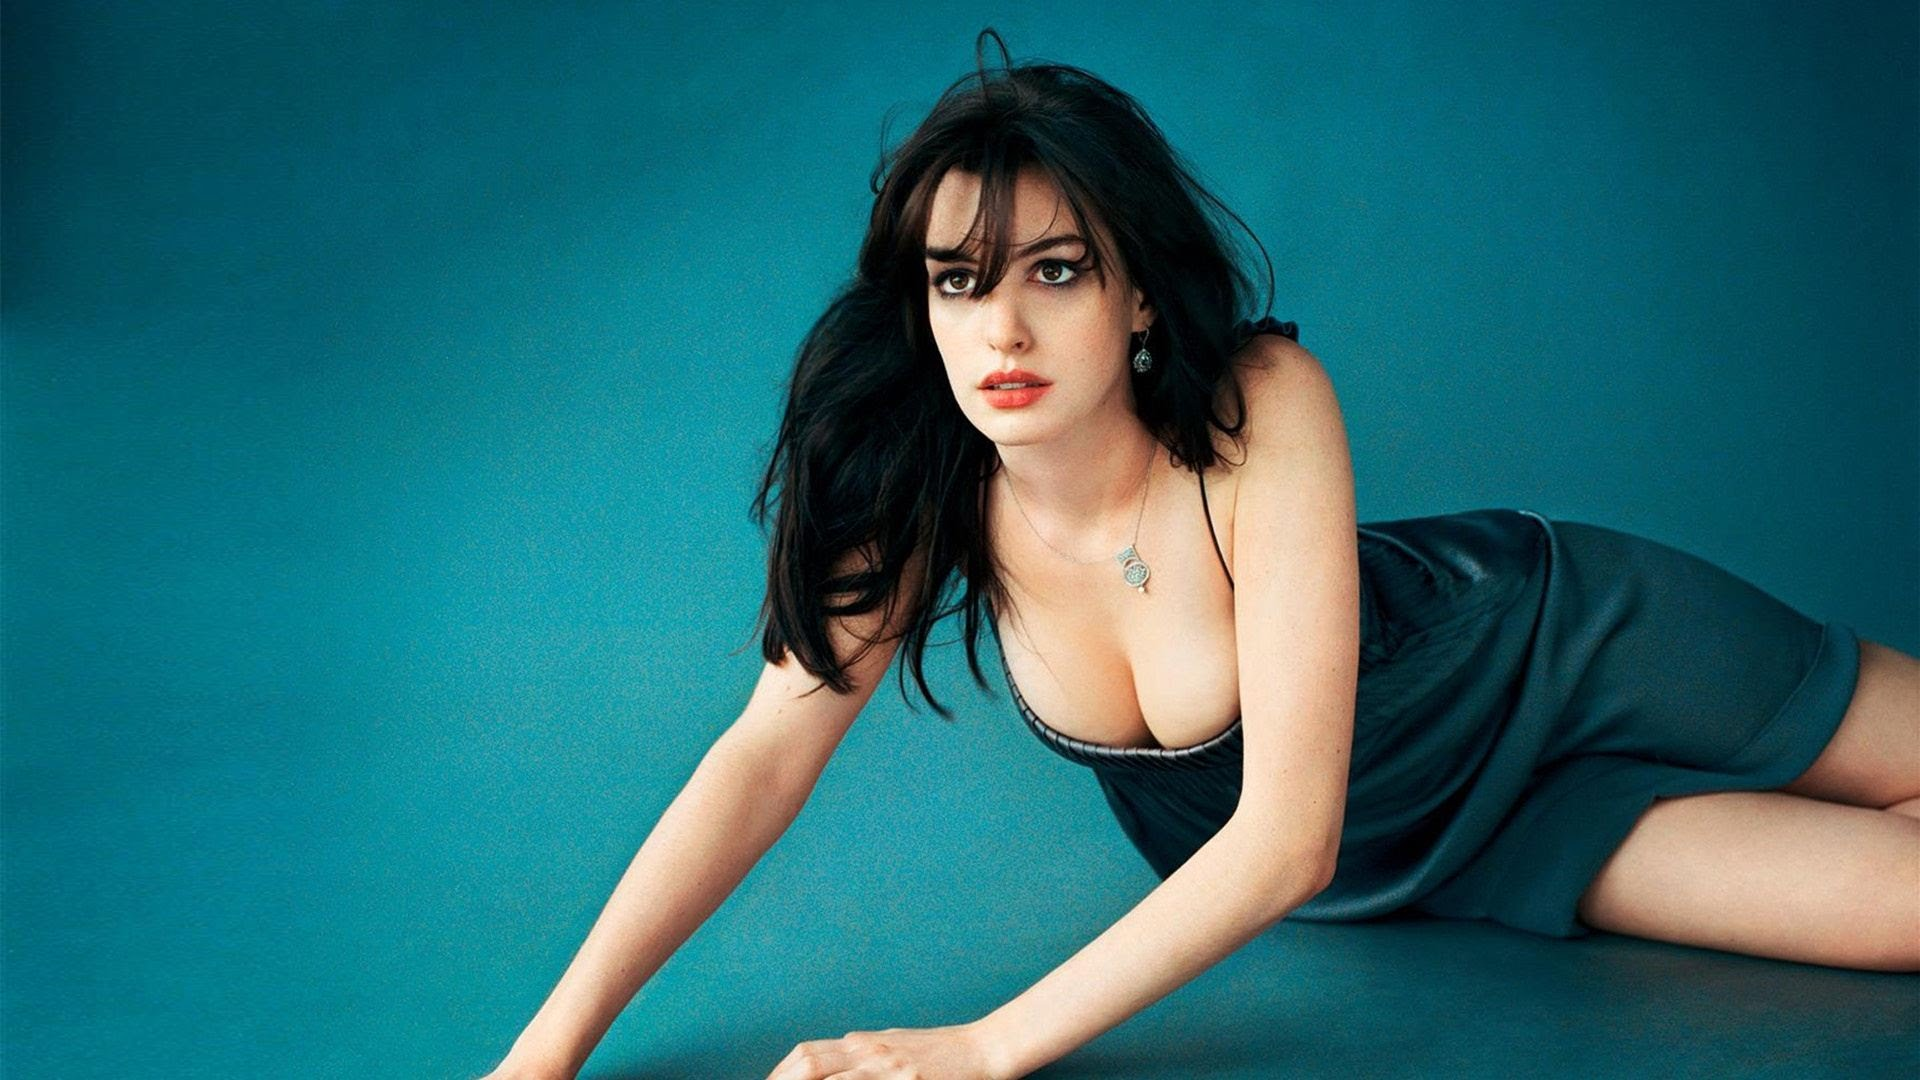 anne hathaway smoking hot pics naked pictures nude photos